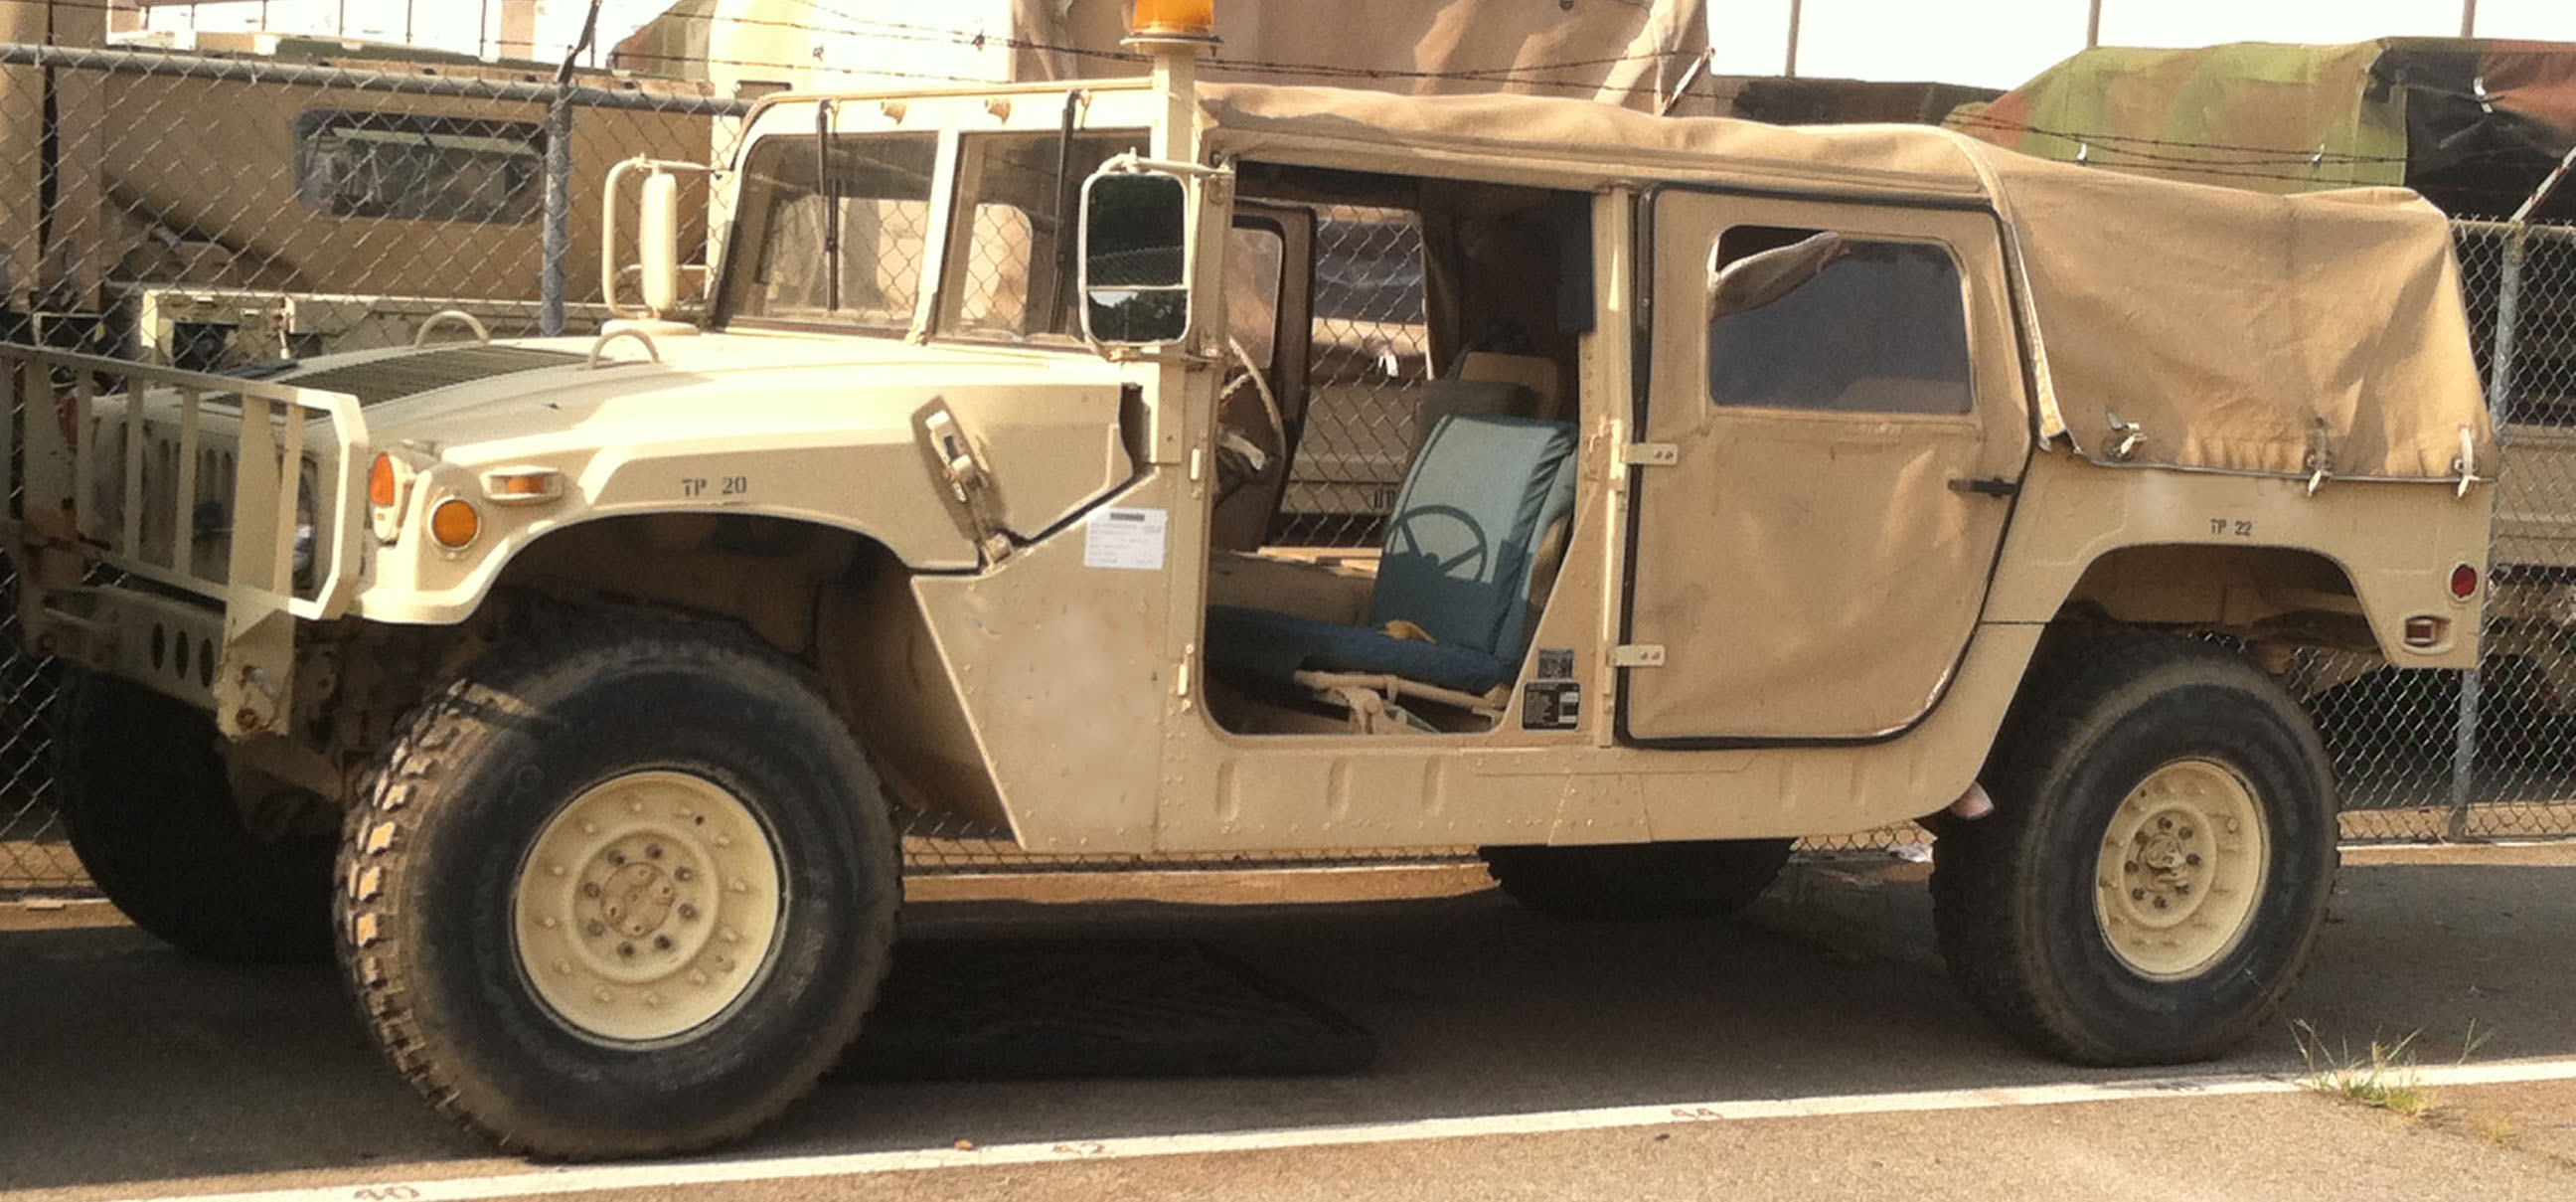 HMMWV, Humvee, M8, Military Truck Parts | army surplus hummers for sale